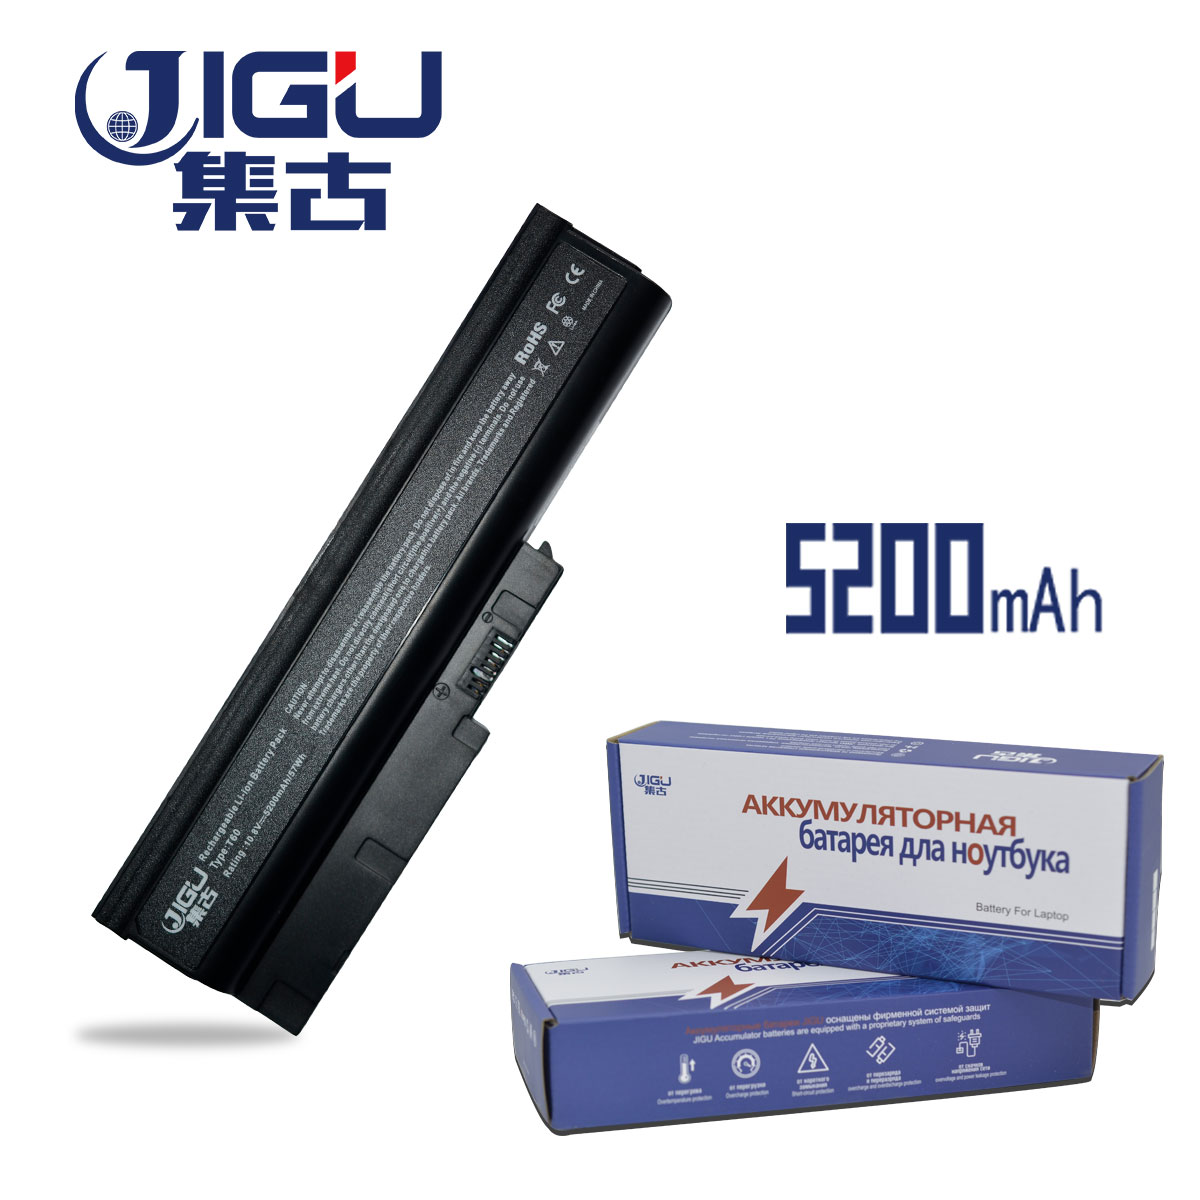 Laptop Accessories Imported From Abroad Jigu 6cells 40y6799 Fru 42t5233 92p1137 Laptop Battery For Lenovo/ Ibm For Thinkpad R61 R61e R61i T60 T60p T61 T61p